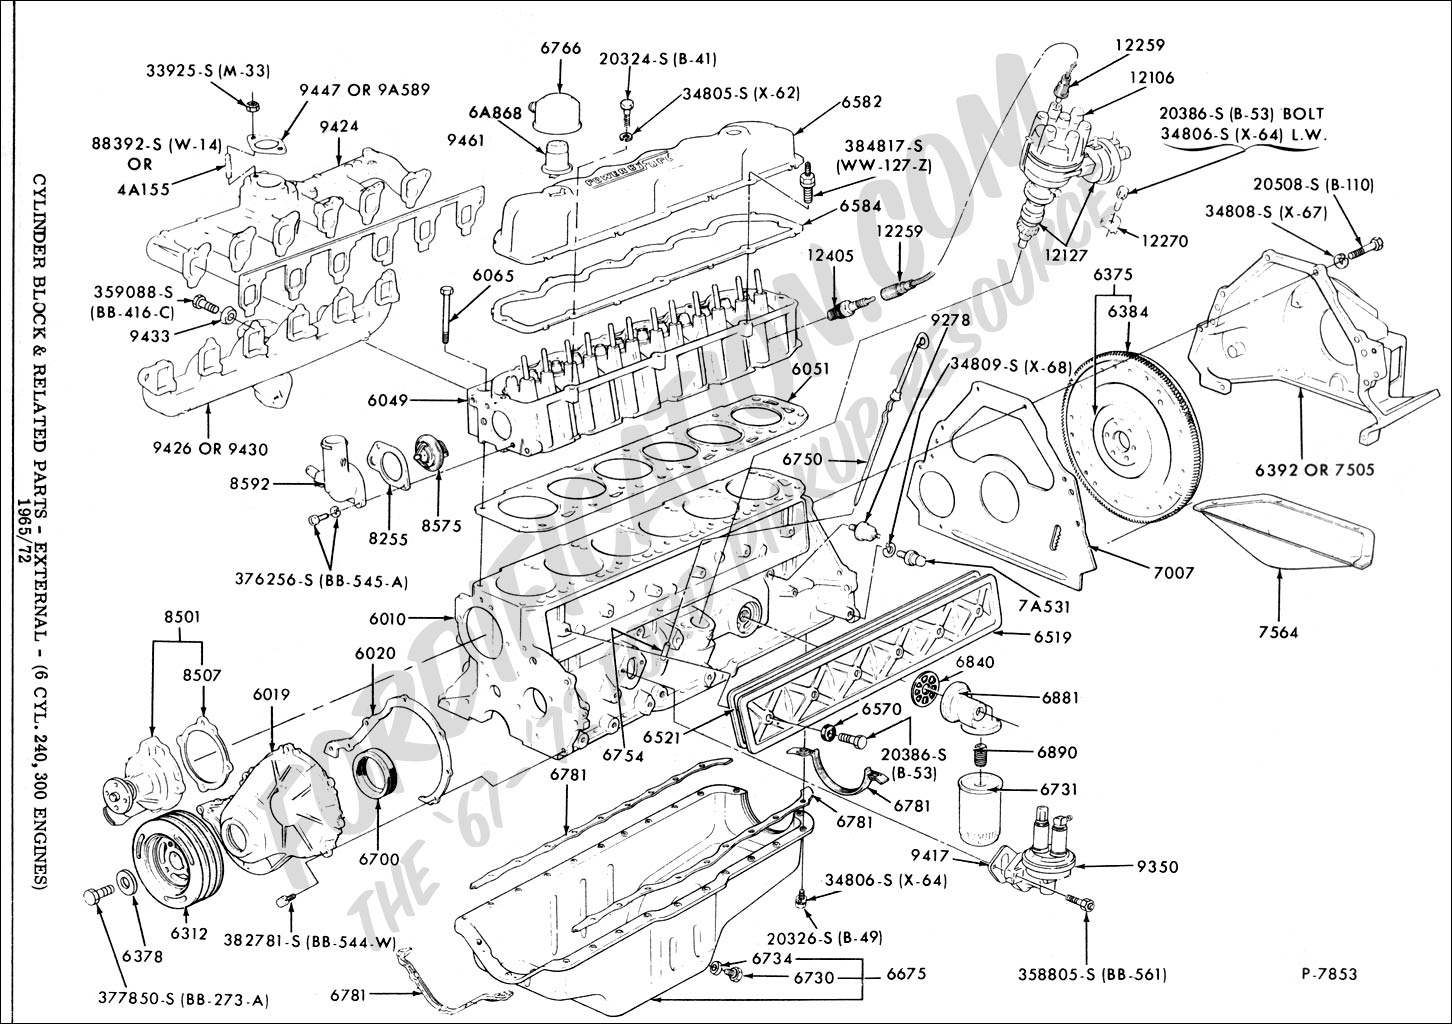 Oil Pan Gasket Diagram moreover 1135826 High Pressure Oil Path Questions besides Boat Motor Diagram in addition 5 3l Engine Valve Covers likewise Cummins system diagrams. on international truck turbo exhaust